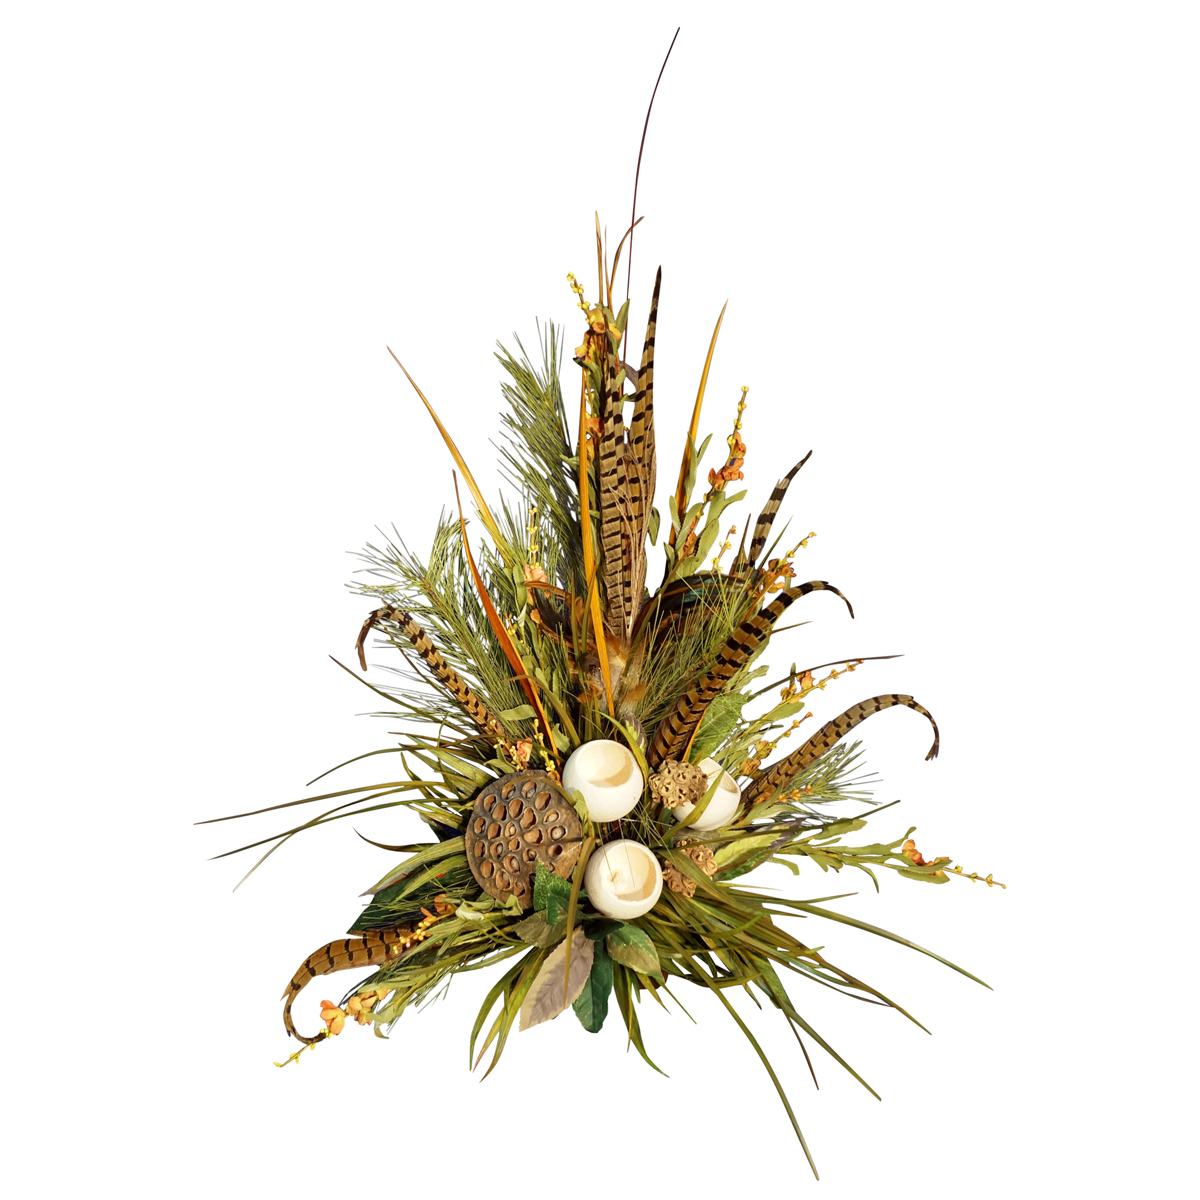 Greenery Arrangement with Pods and Feathers